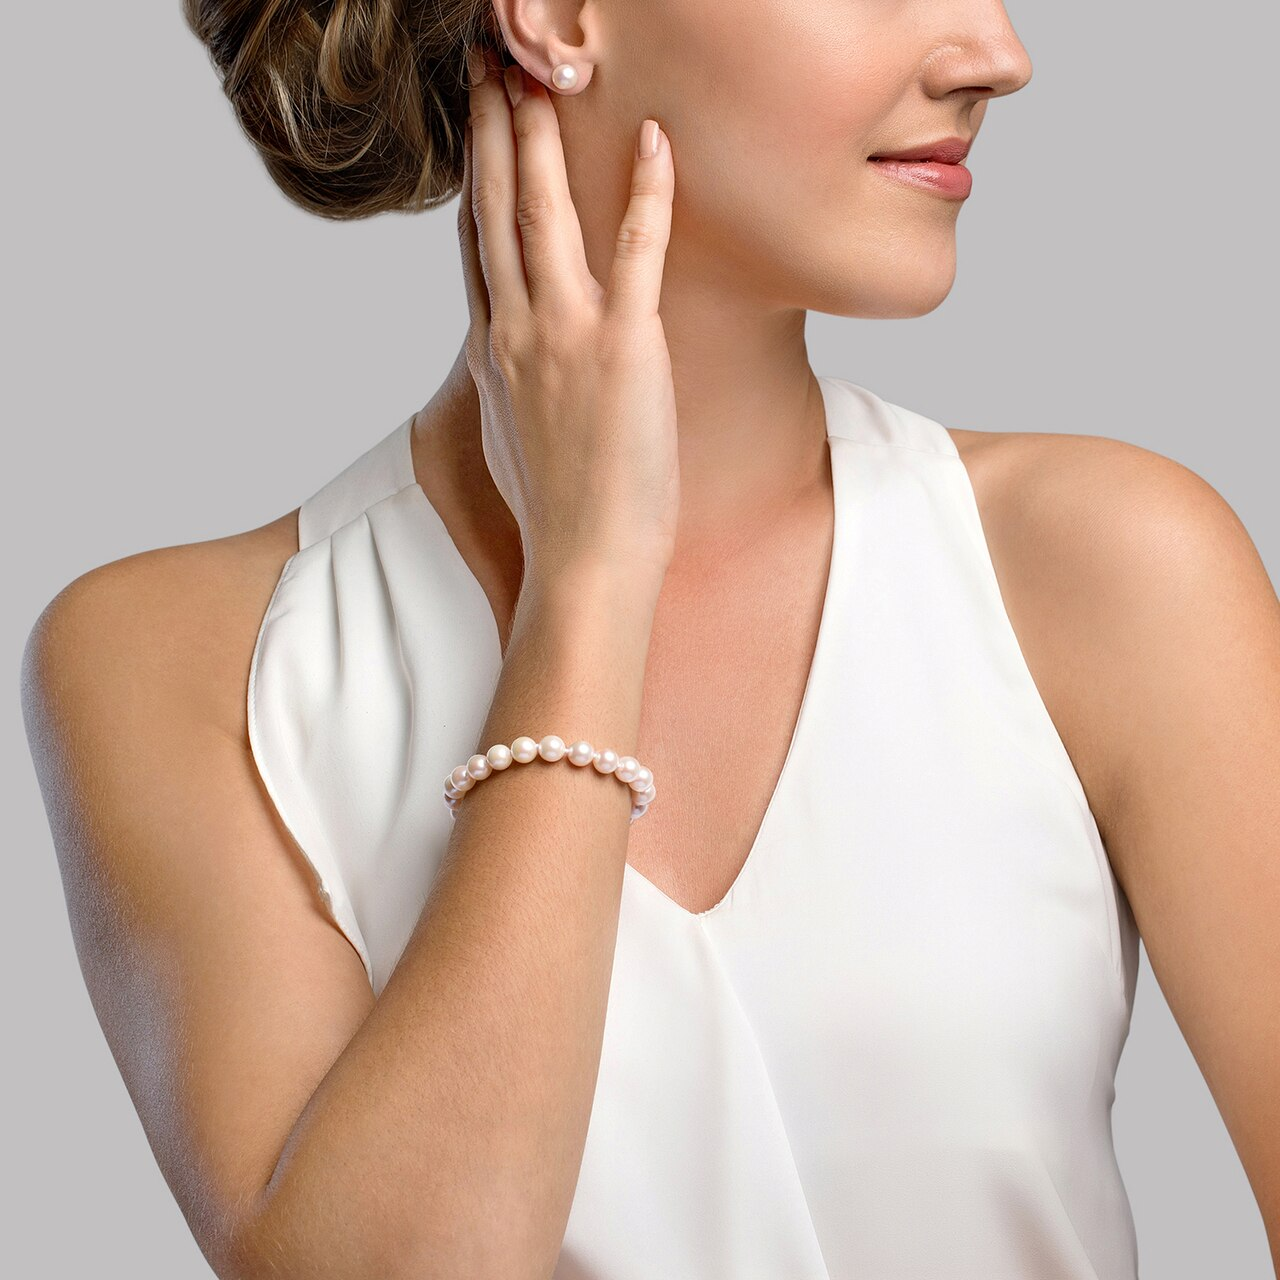 This gorgeous bracelet features 7.0-8.0mm white Freshwater pearls, handpicked for their luminous luster